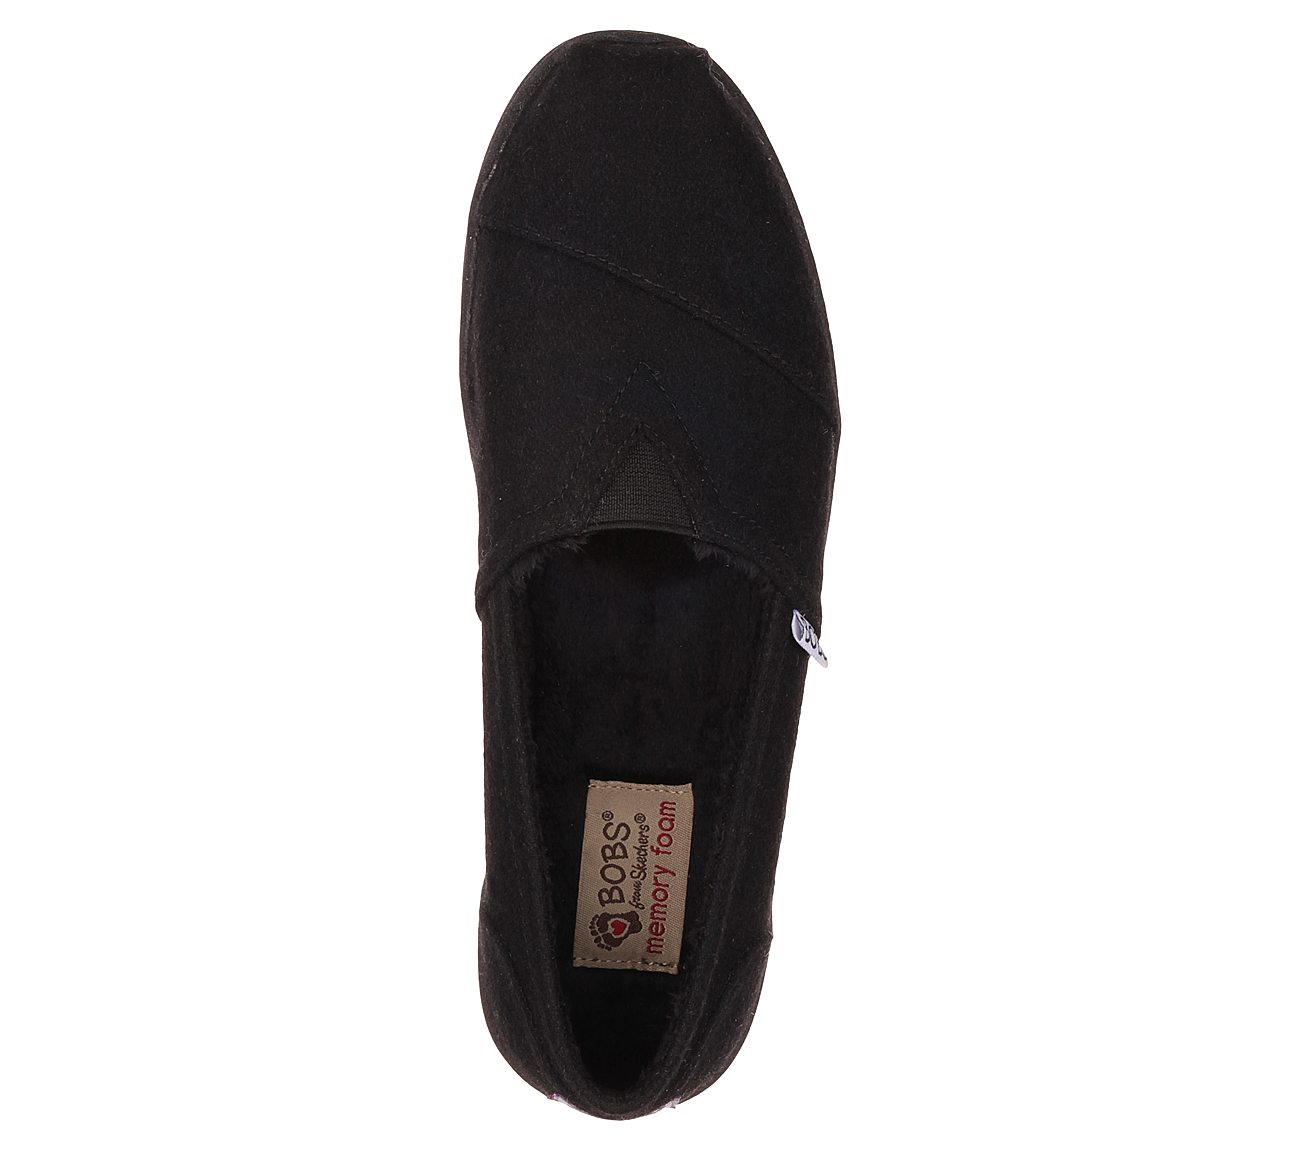 bf2350f56fd9 Buy SKECHERS Bobs Bliss - Hot Cocoa BOBS Shoes only  27.00